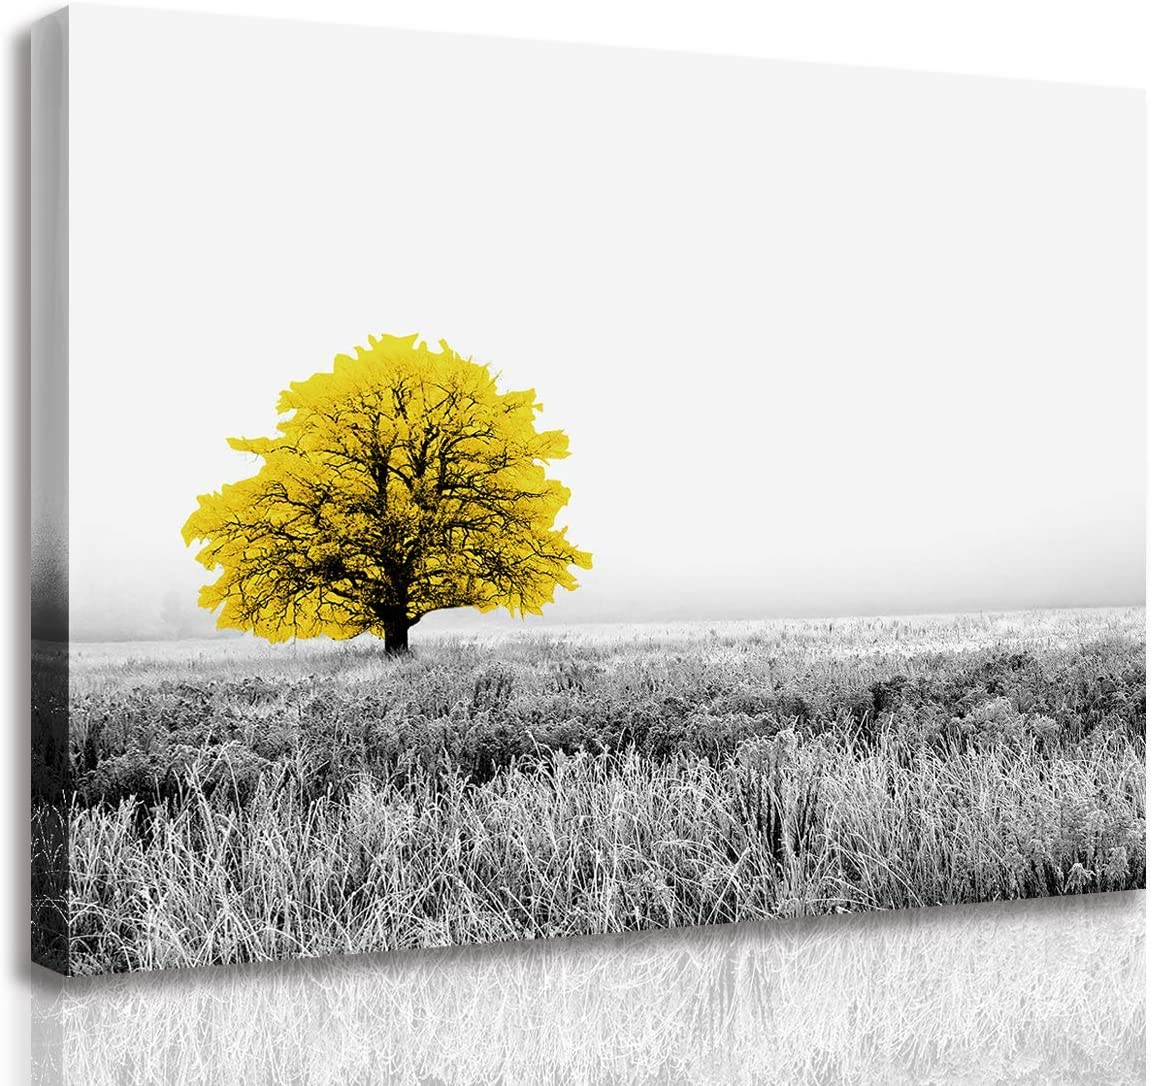 Canvas Print Wall Art Painting Yellow Tree in Black and White Nature Landscape Artwork Prints Picture Modern Home Decor for Bedroom Bathroom Living Room Decoration